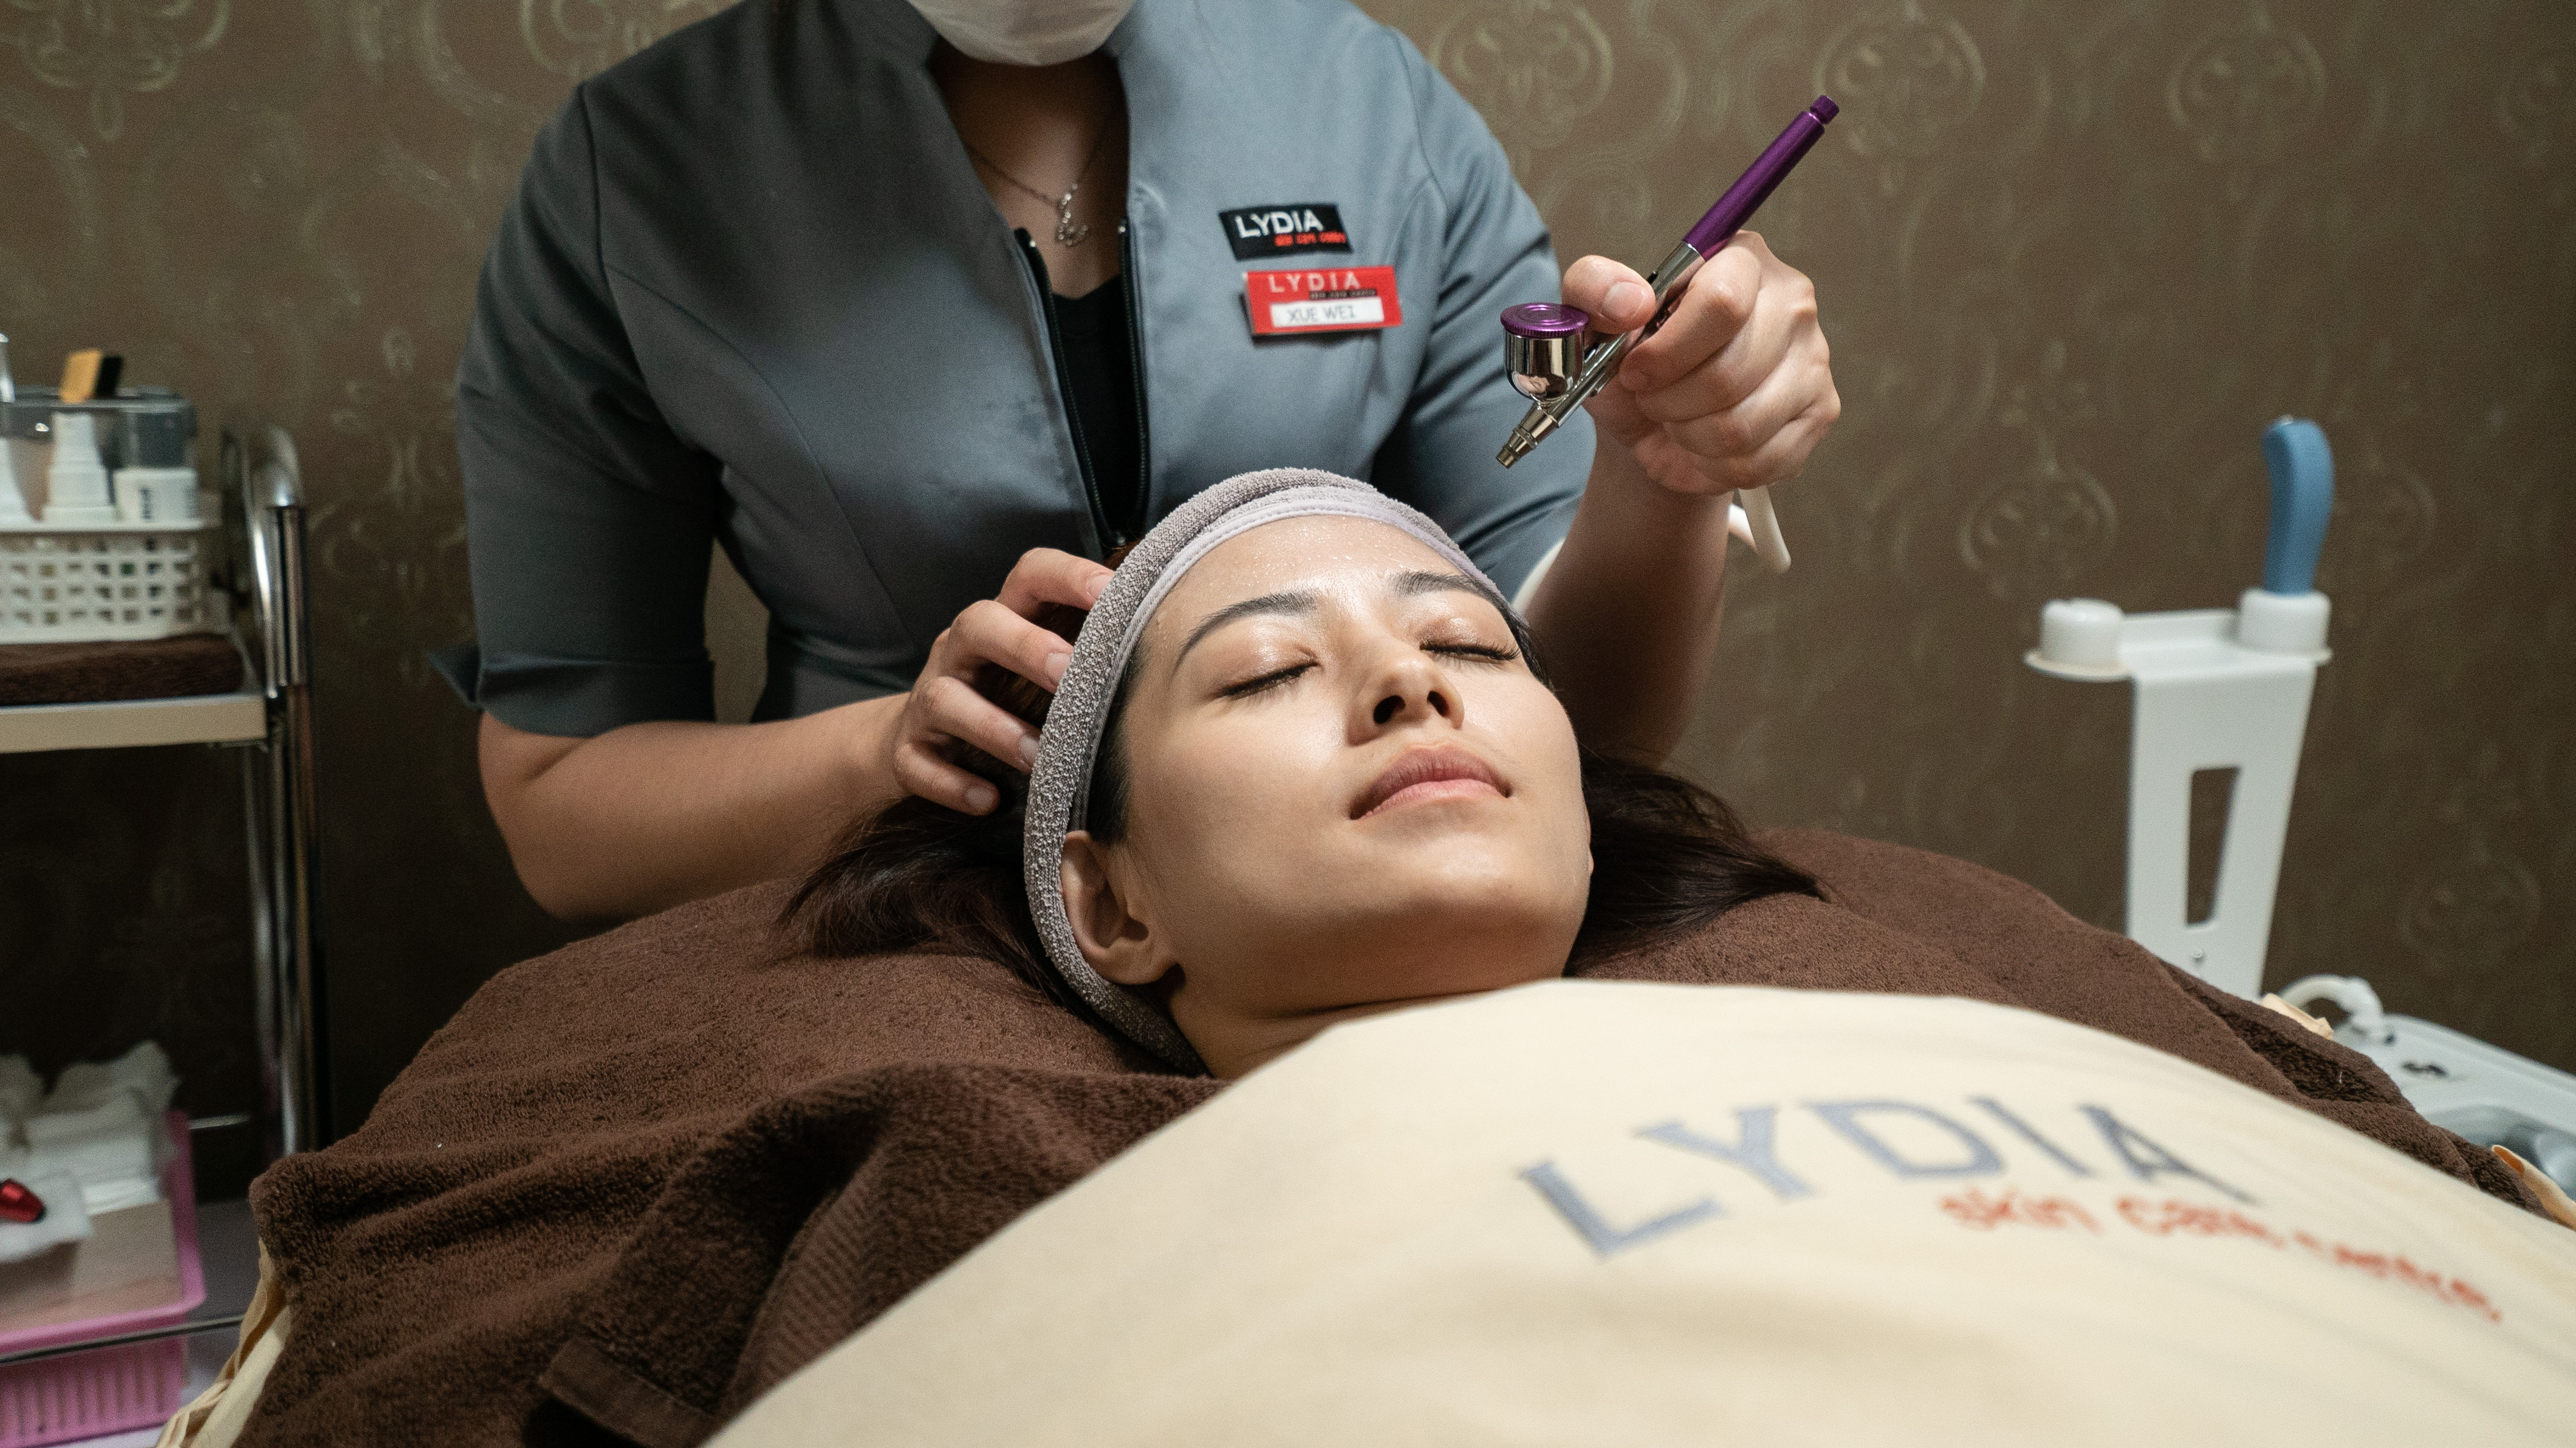 Oxyderm Treatment skin care lydia jb